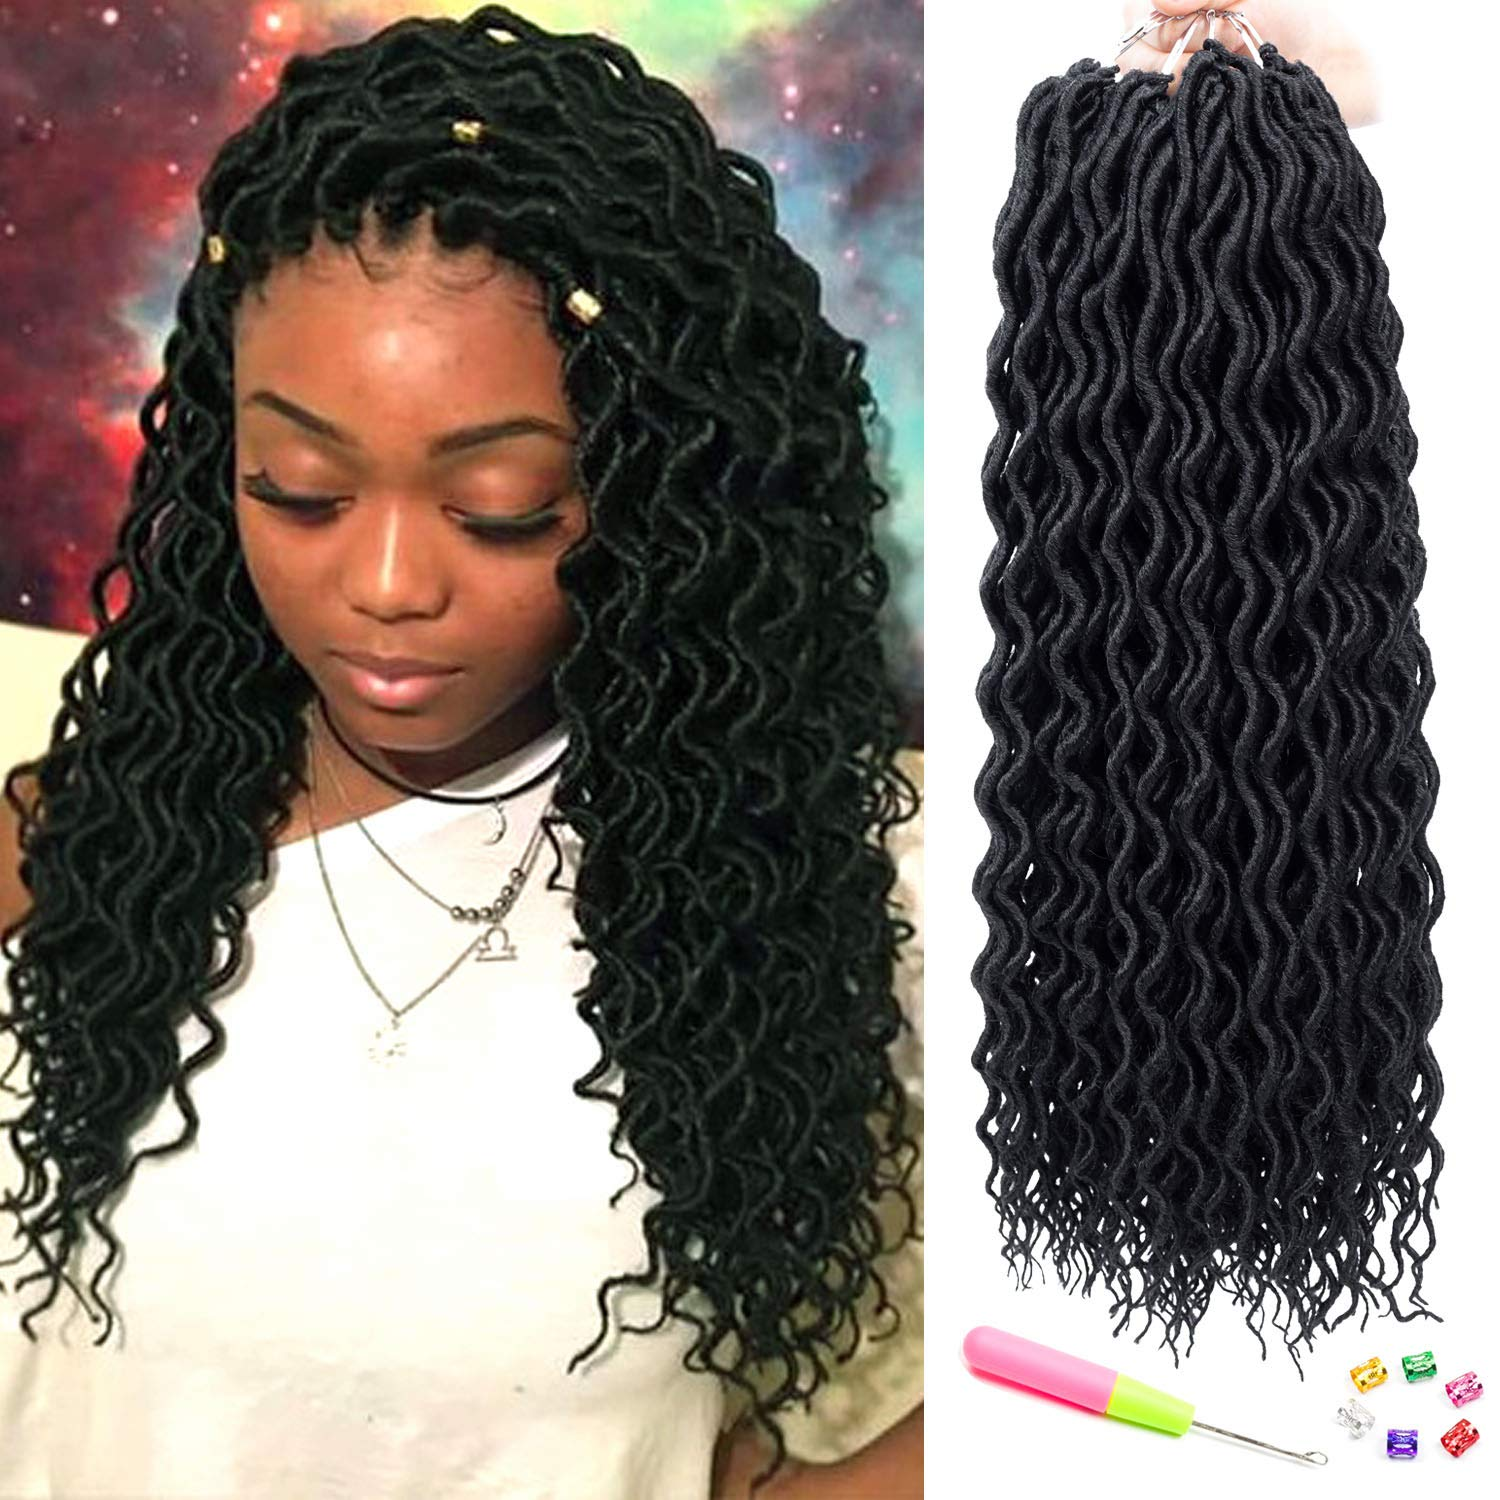 Amazoncom 6 Packs Faux Locs Goddess Locs Crochet Hair Ombre Curly